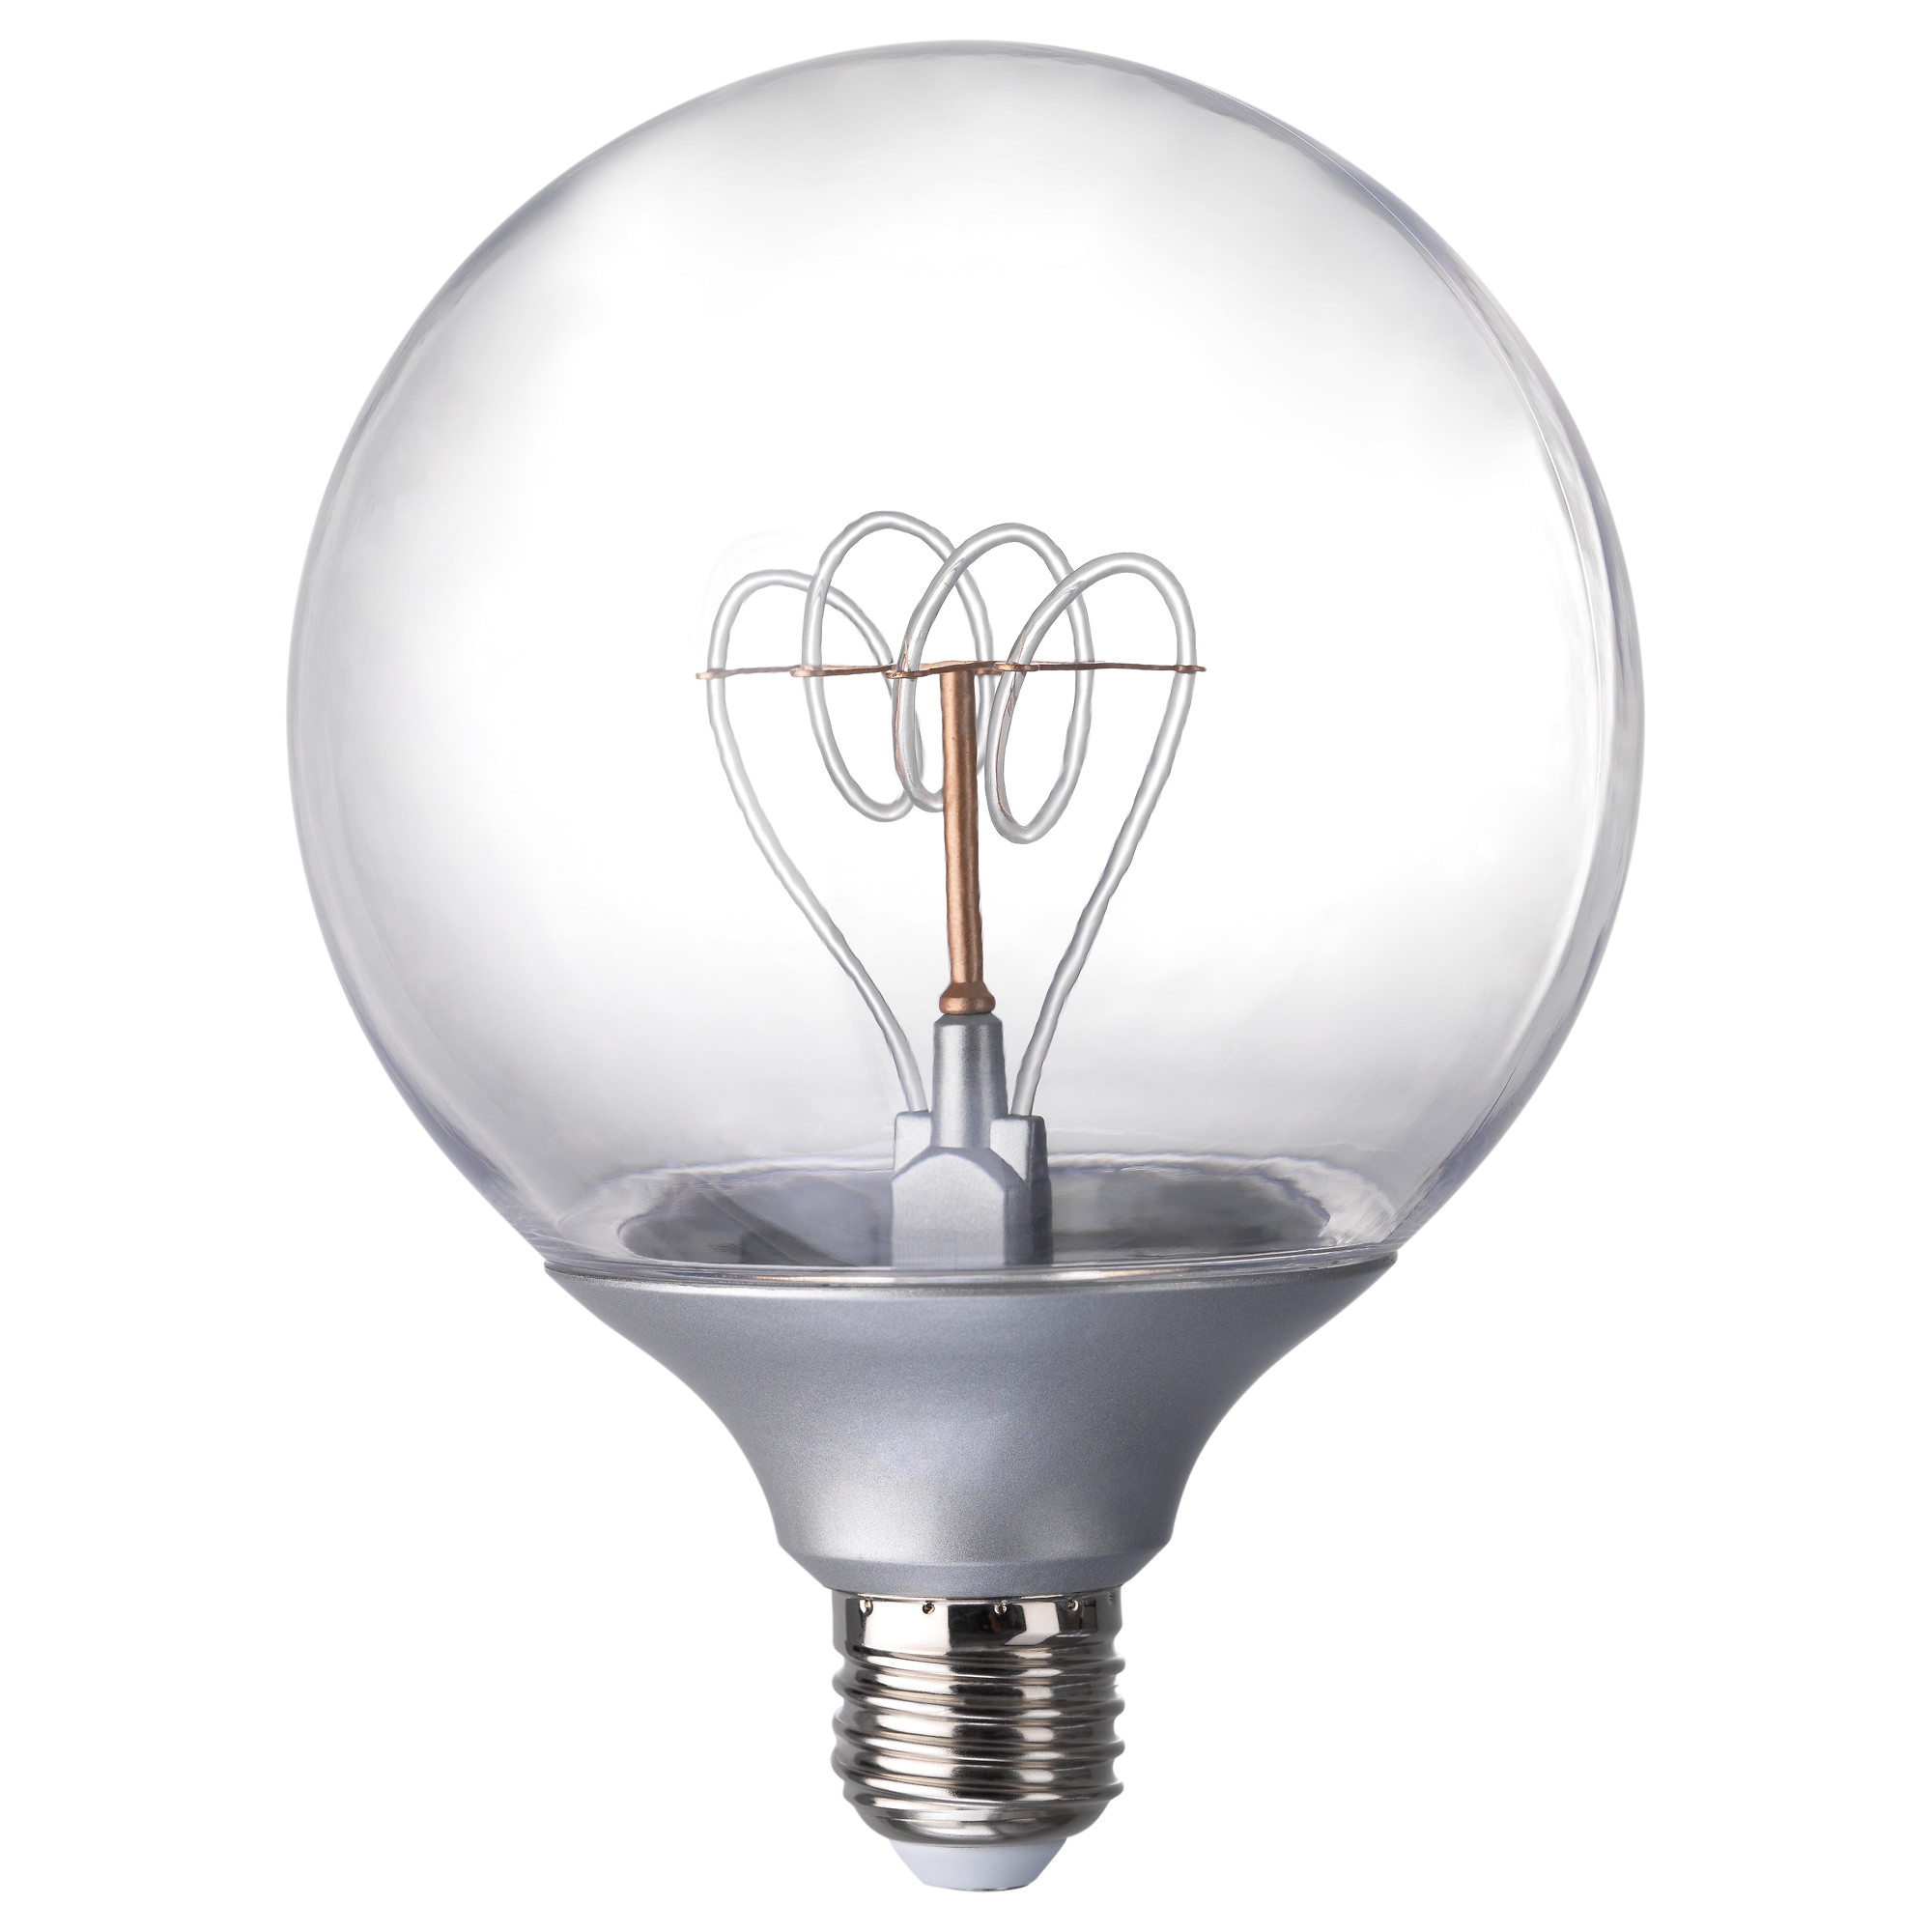 NITTIO LED bulb E26 20 lumen, globe silver color Luminous flux: 20 Lumen  Diameter